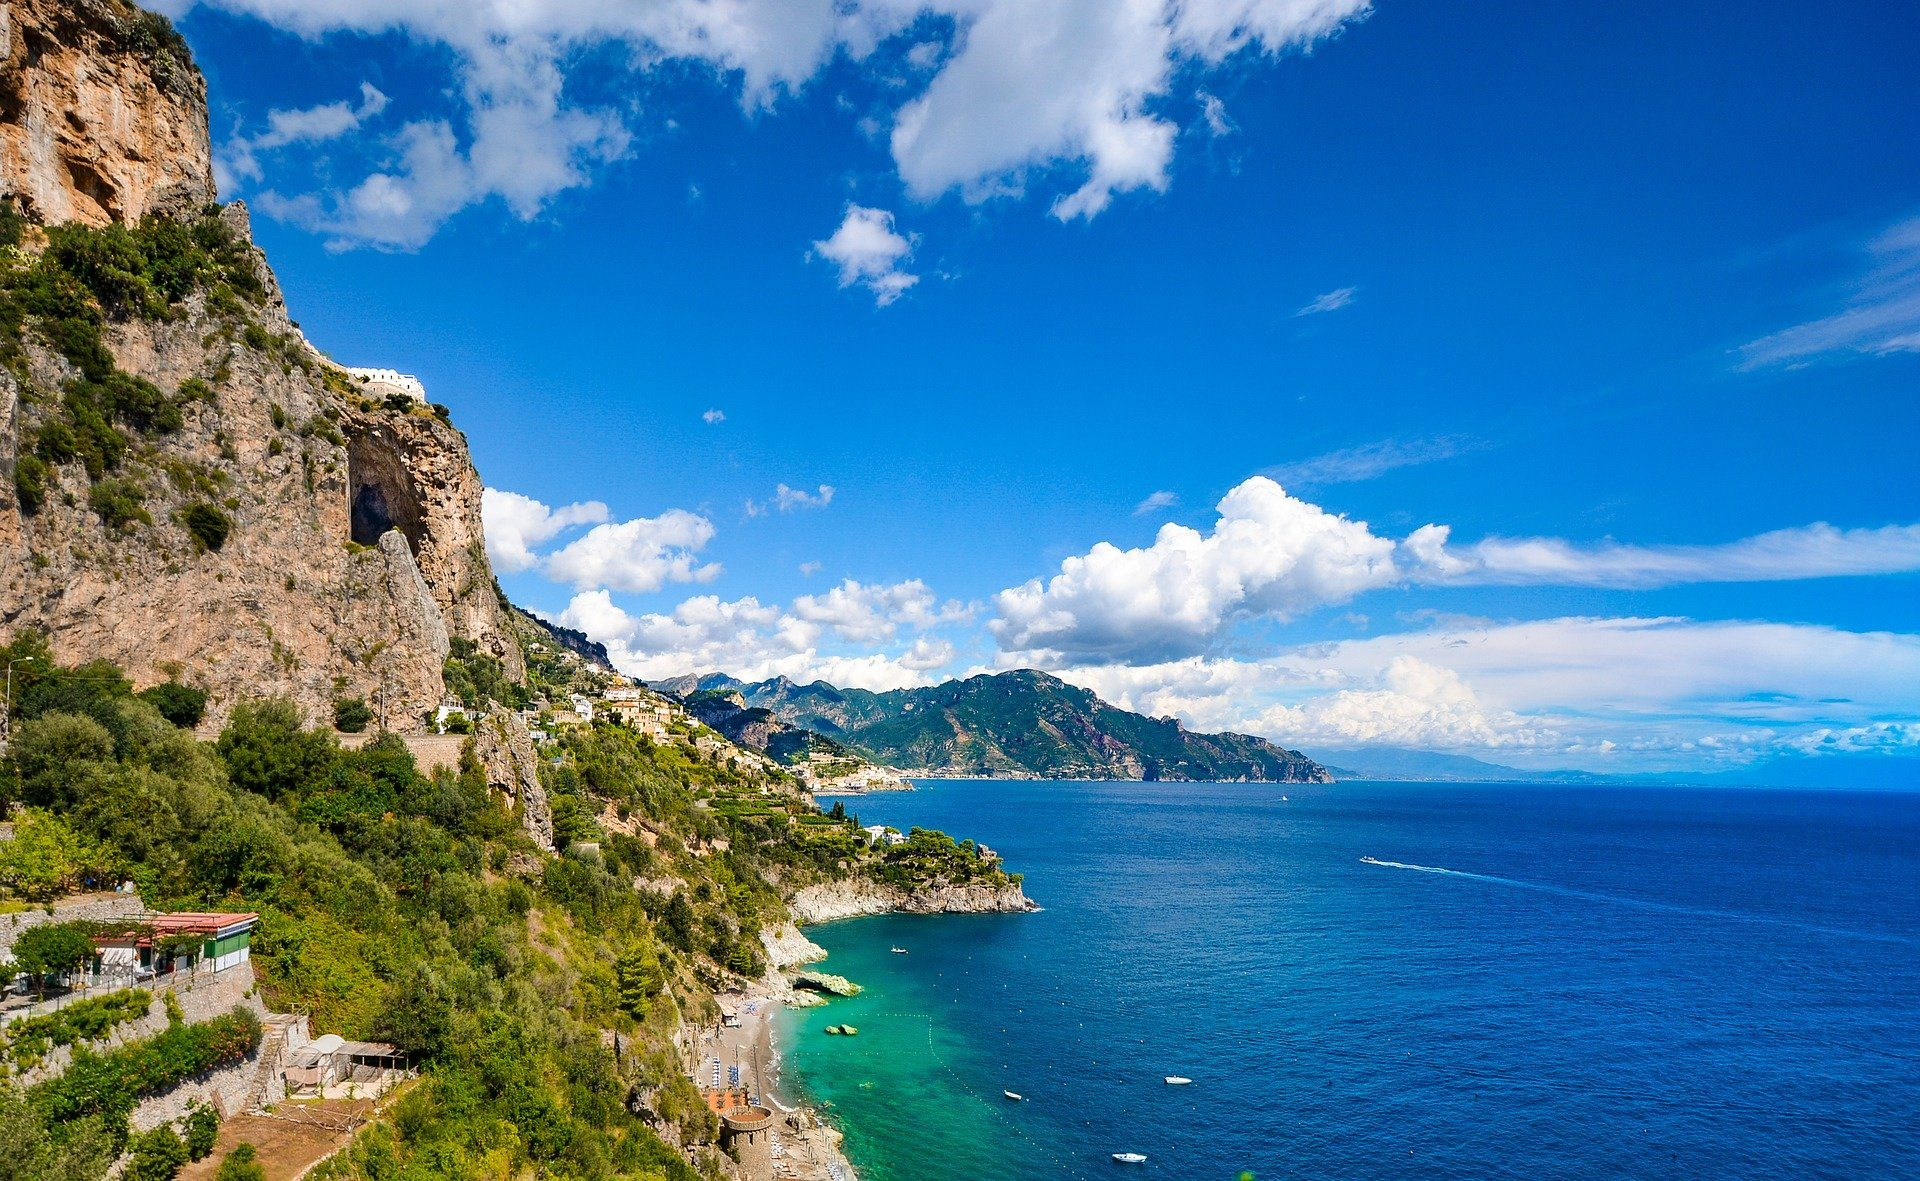 cliff side in the Amalfi coast with turquoise seas